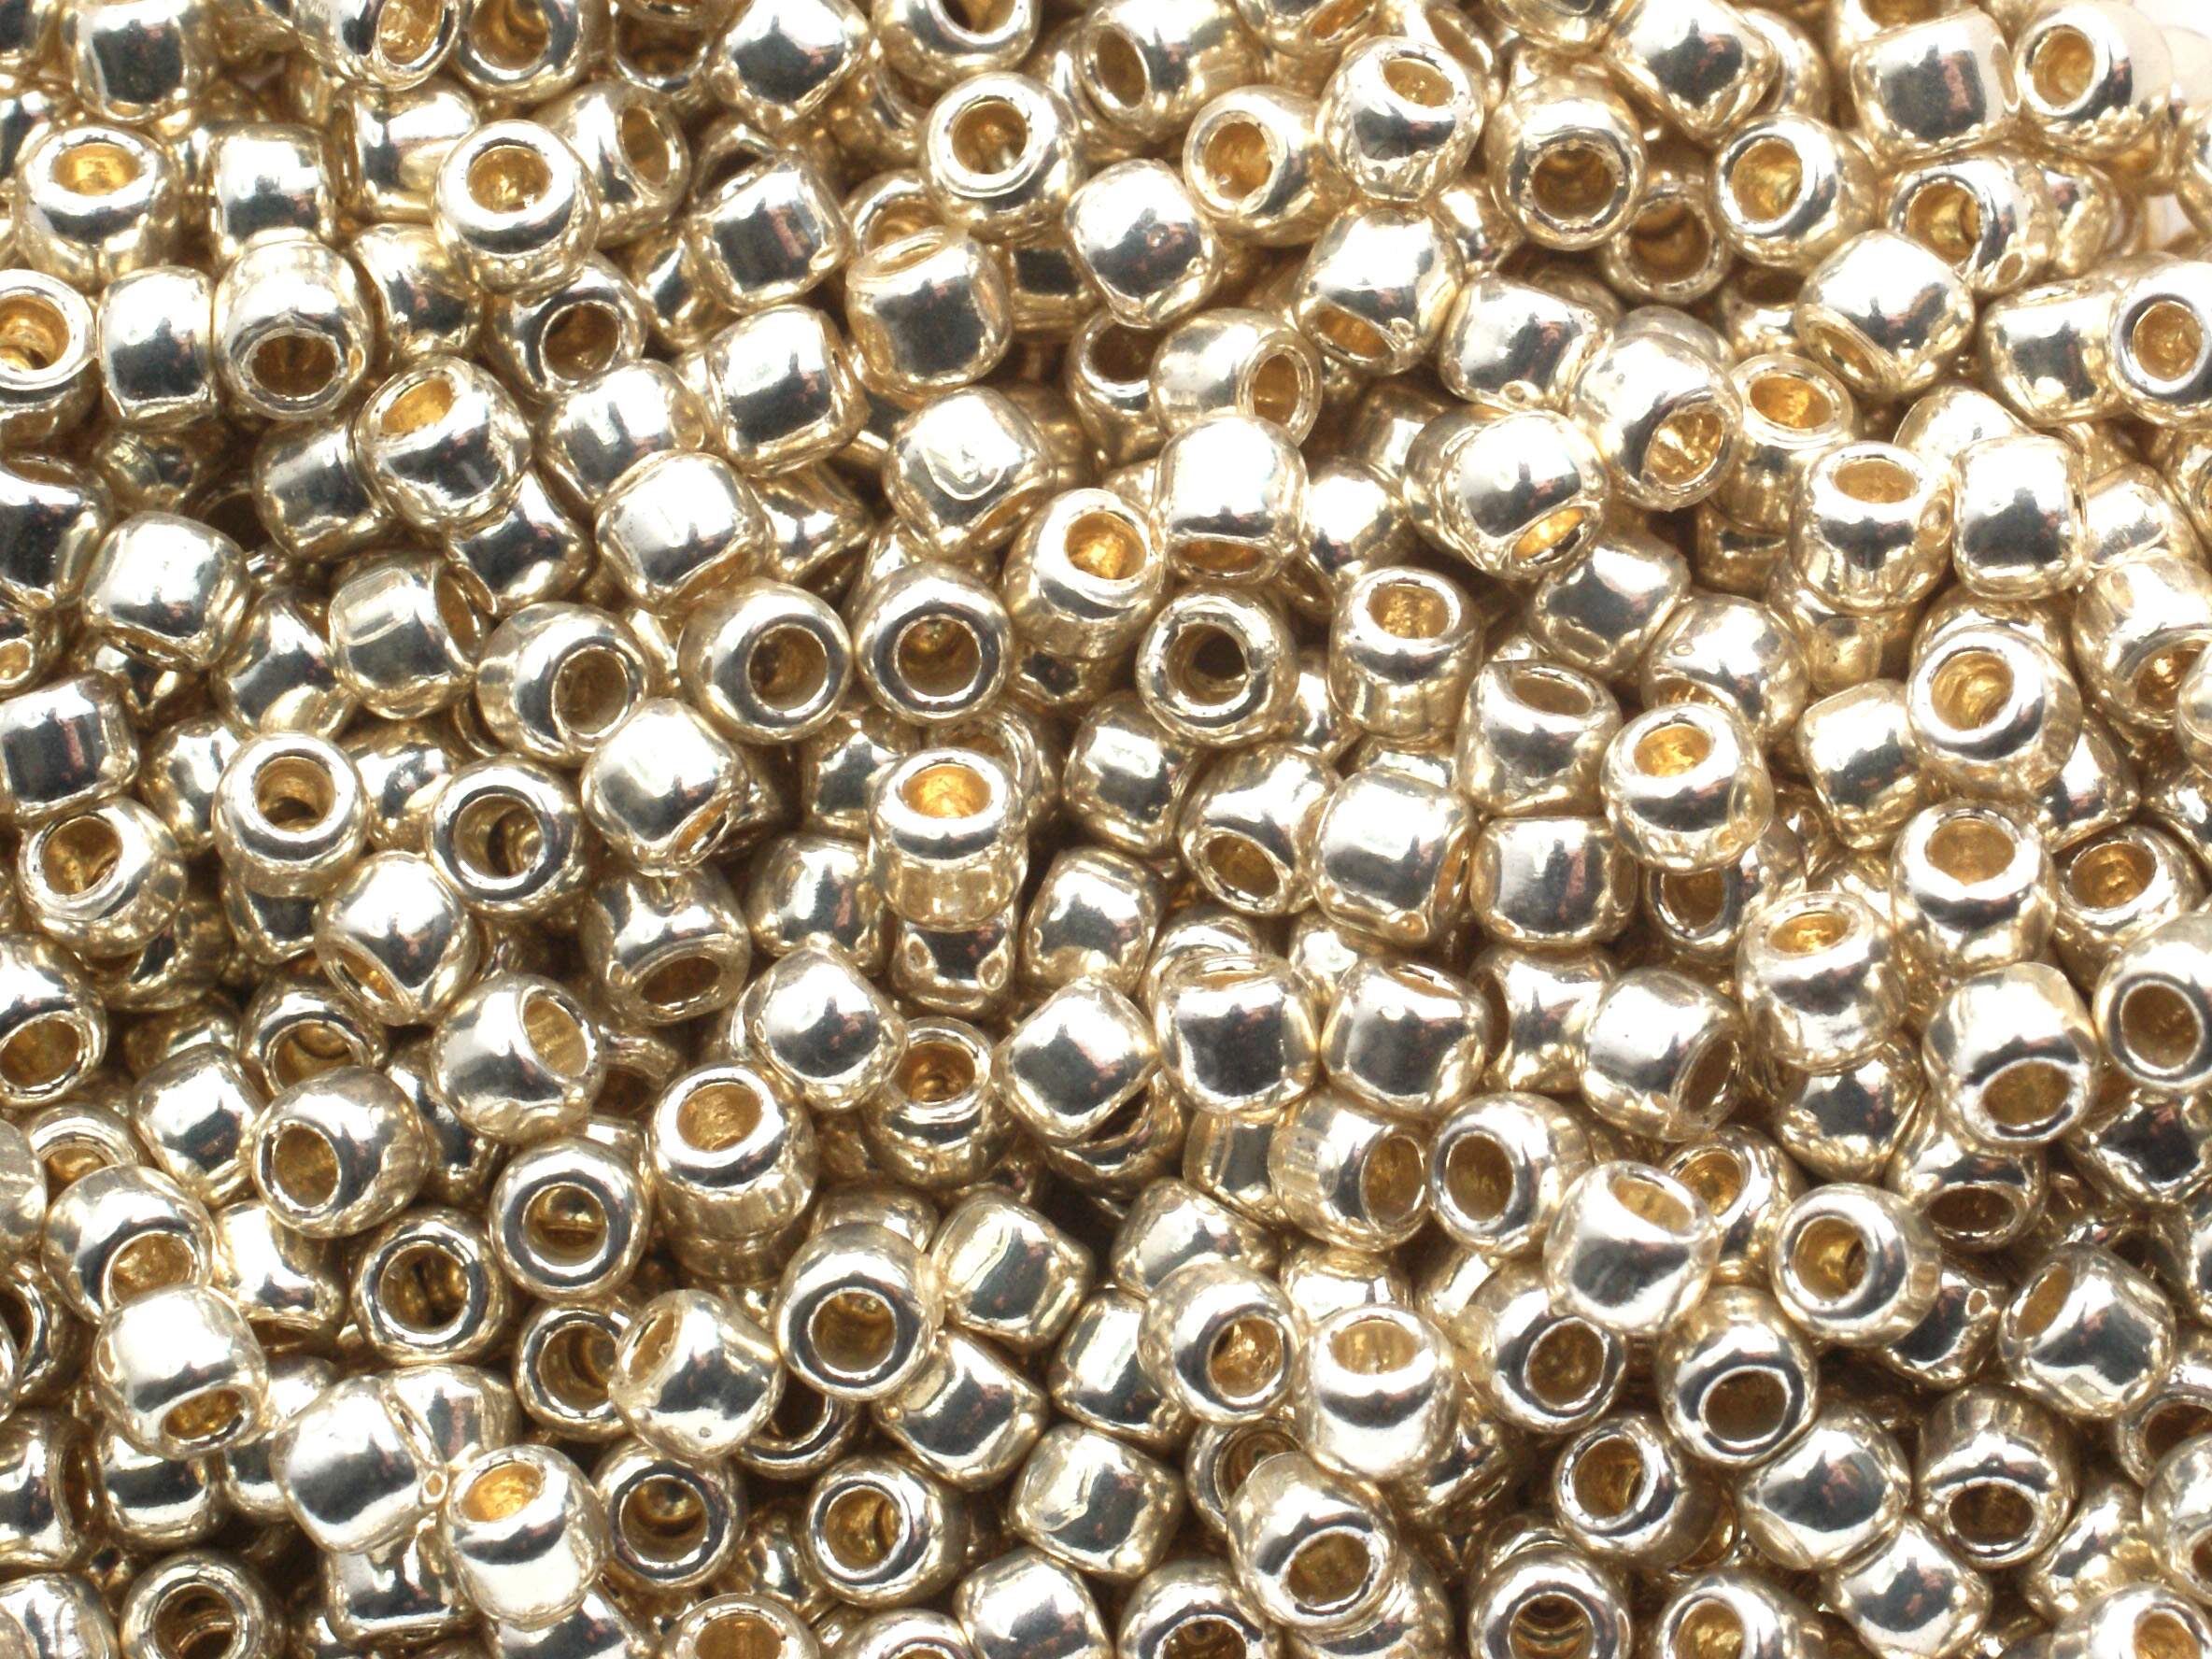 10 g 11/0 TOHO Seedbeads, Permanent Finish Galvanized Aluminium